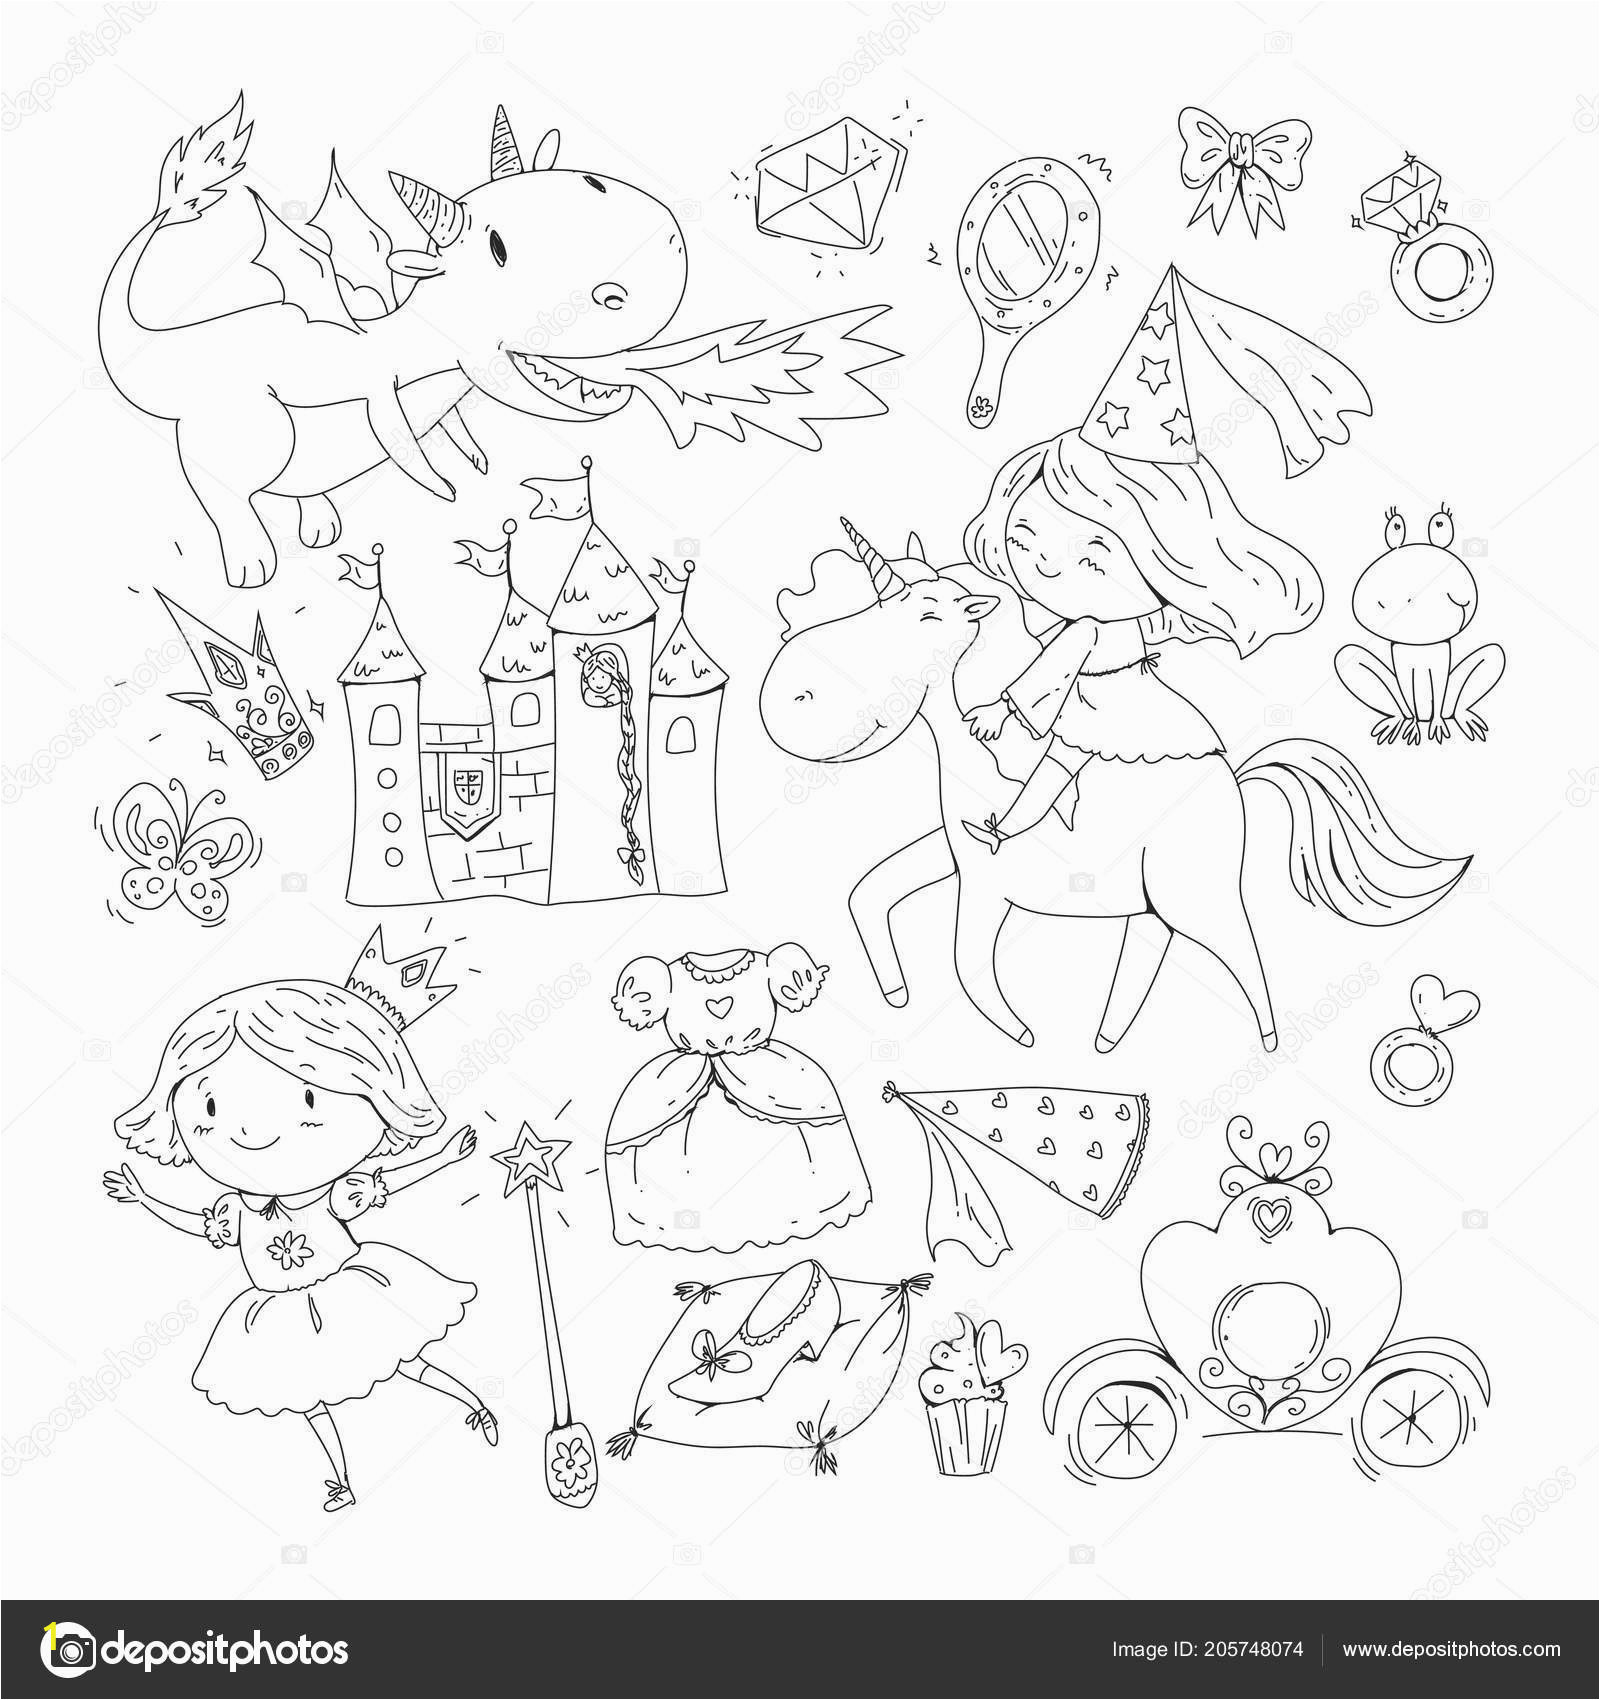 depositphotos stock illustration coloring page for book cute